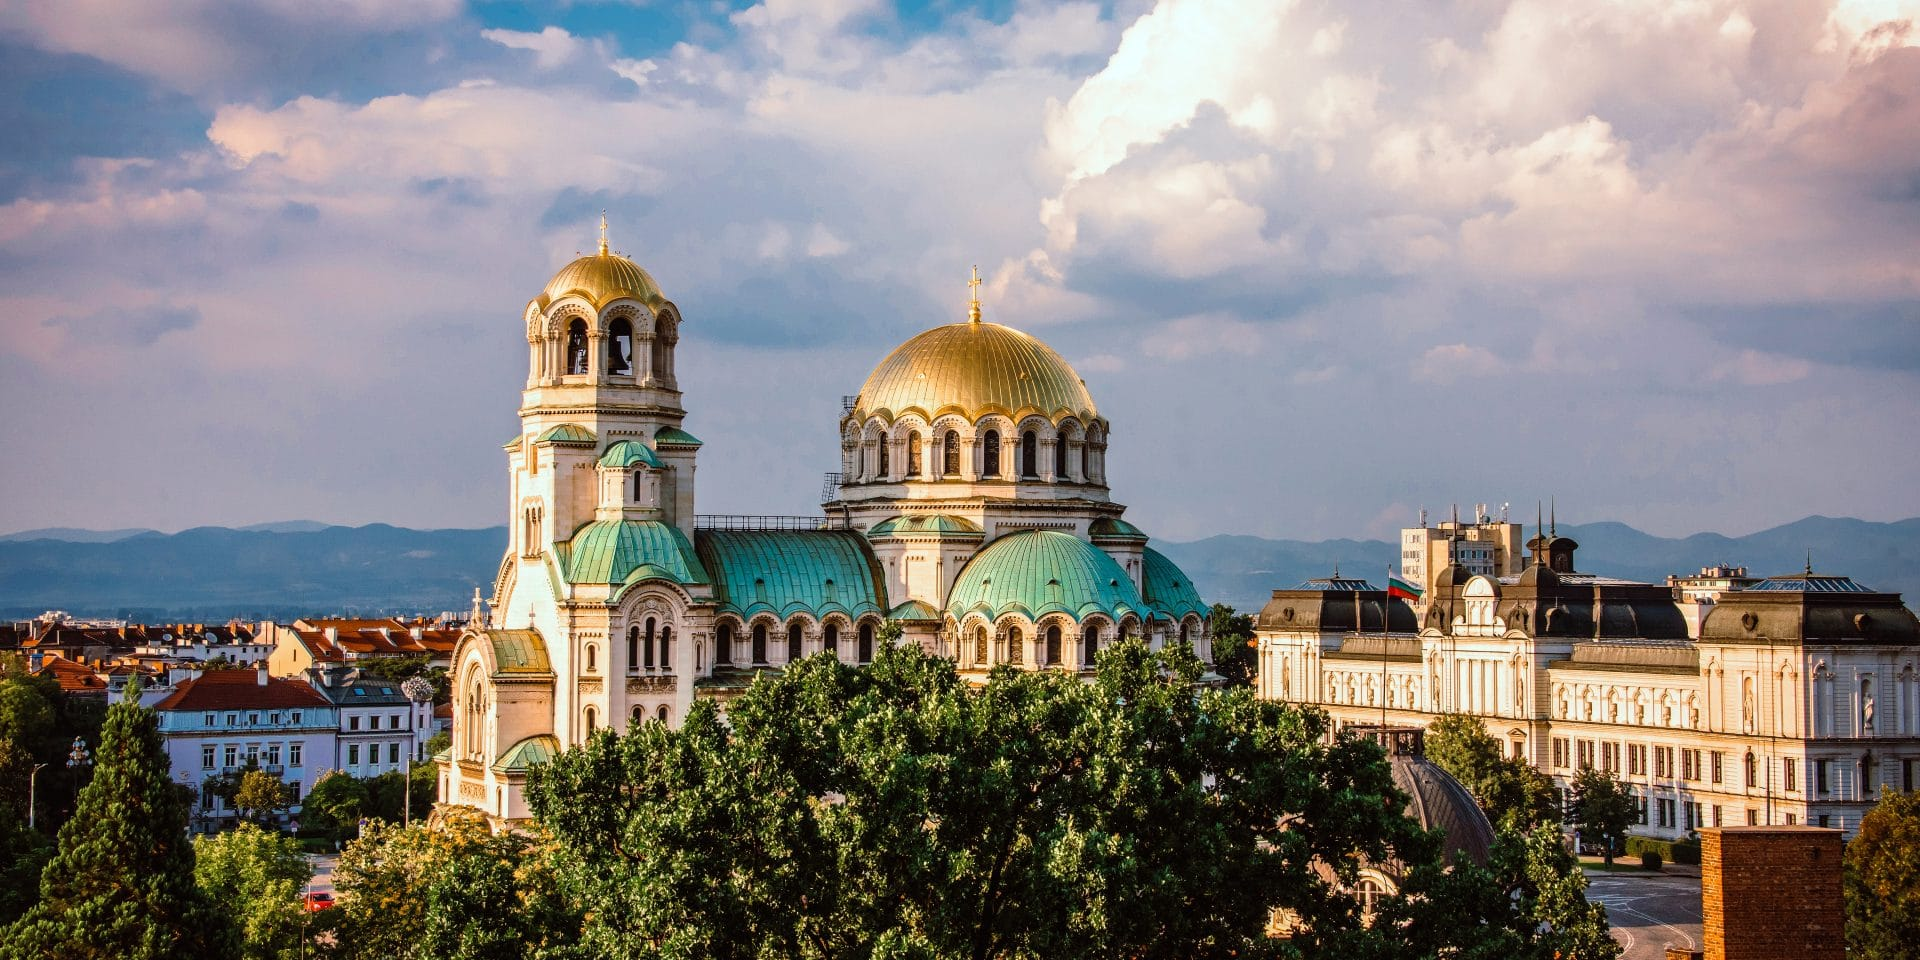 Free Sofia Tour - The Free English Sightseeing Walking Tour of Sofia